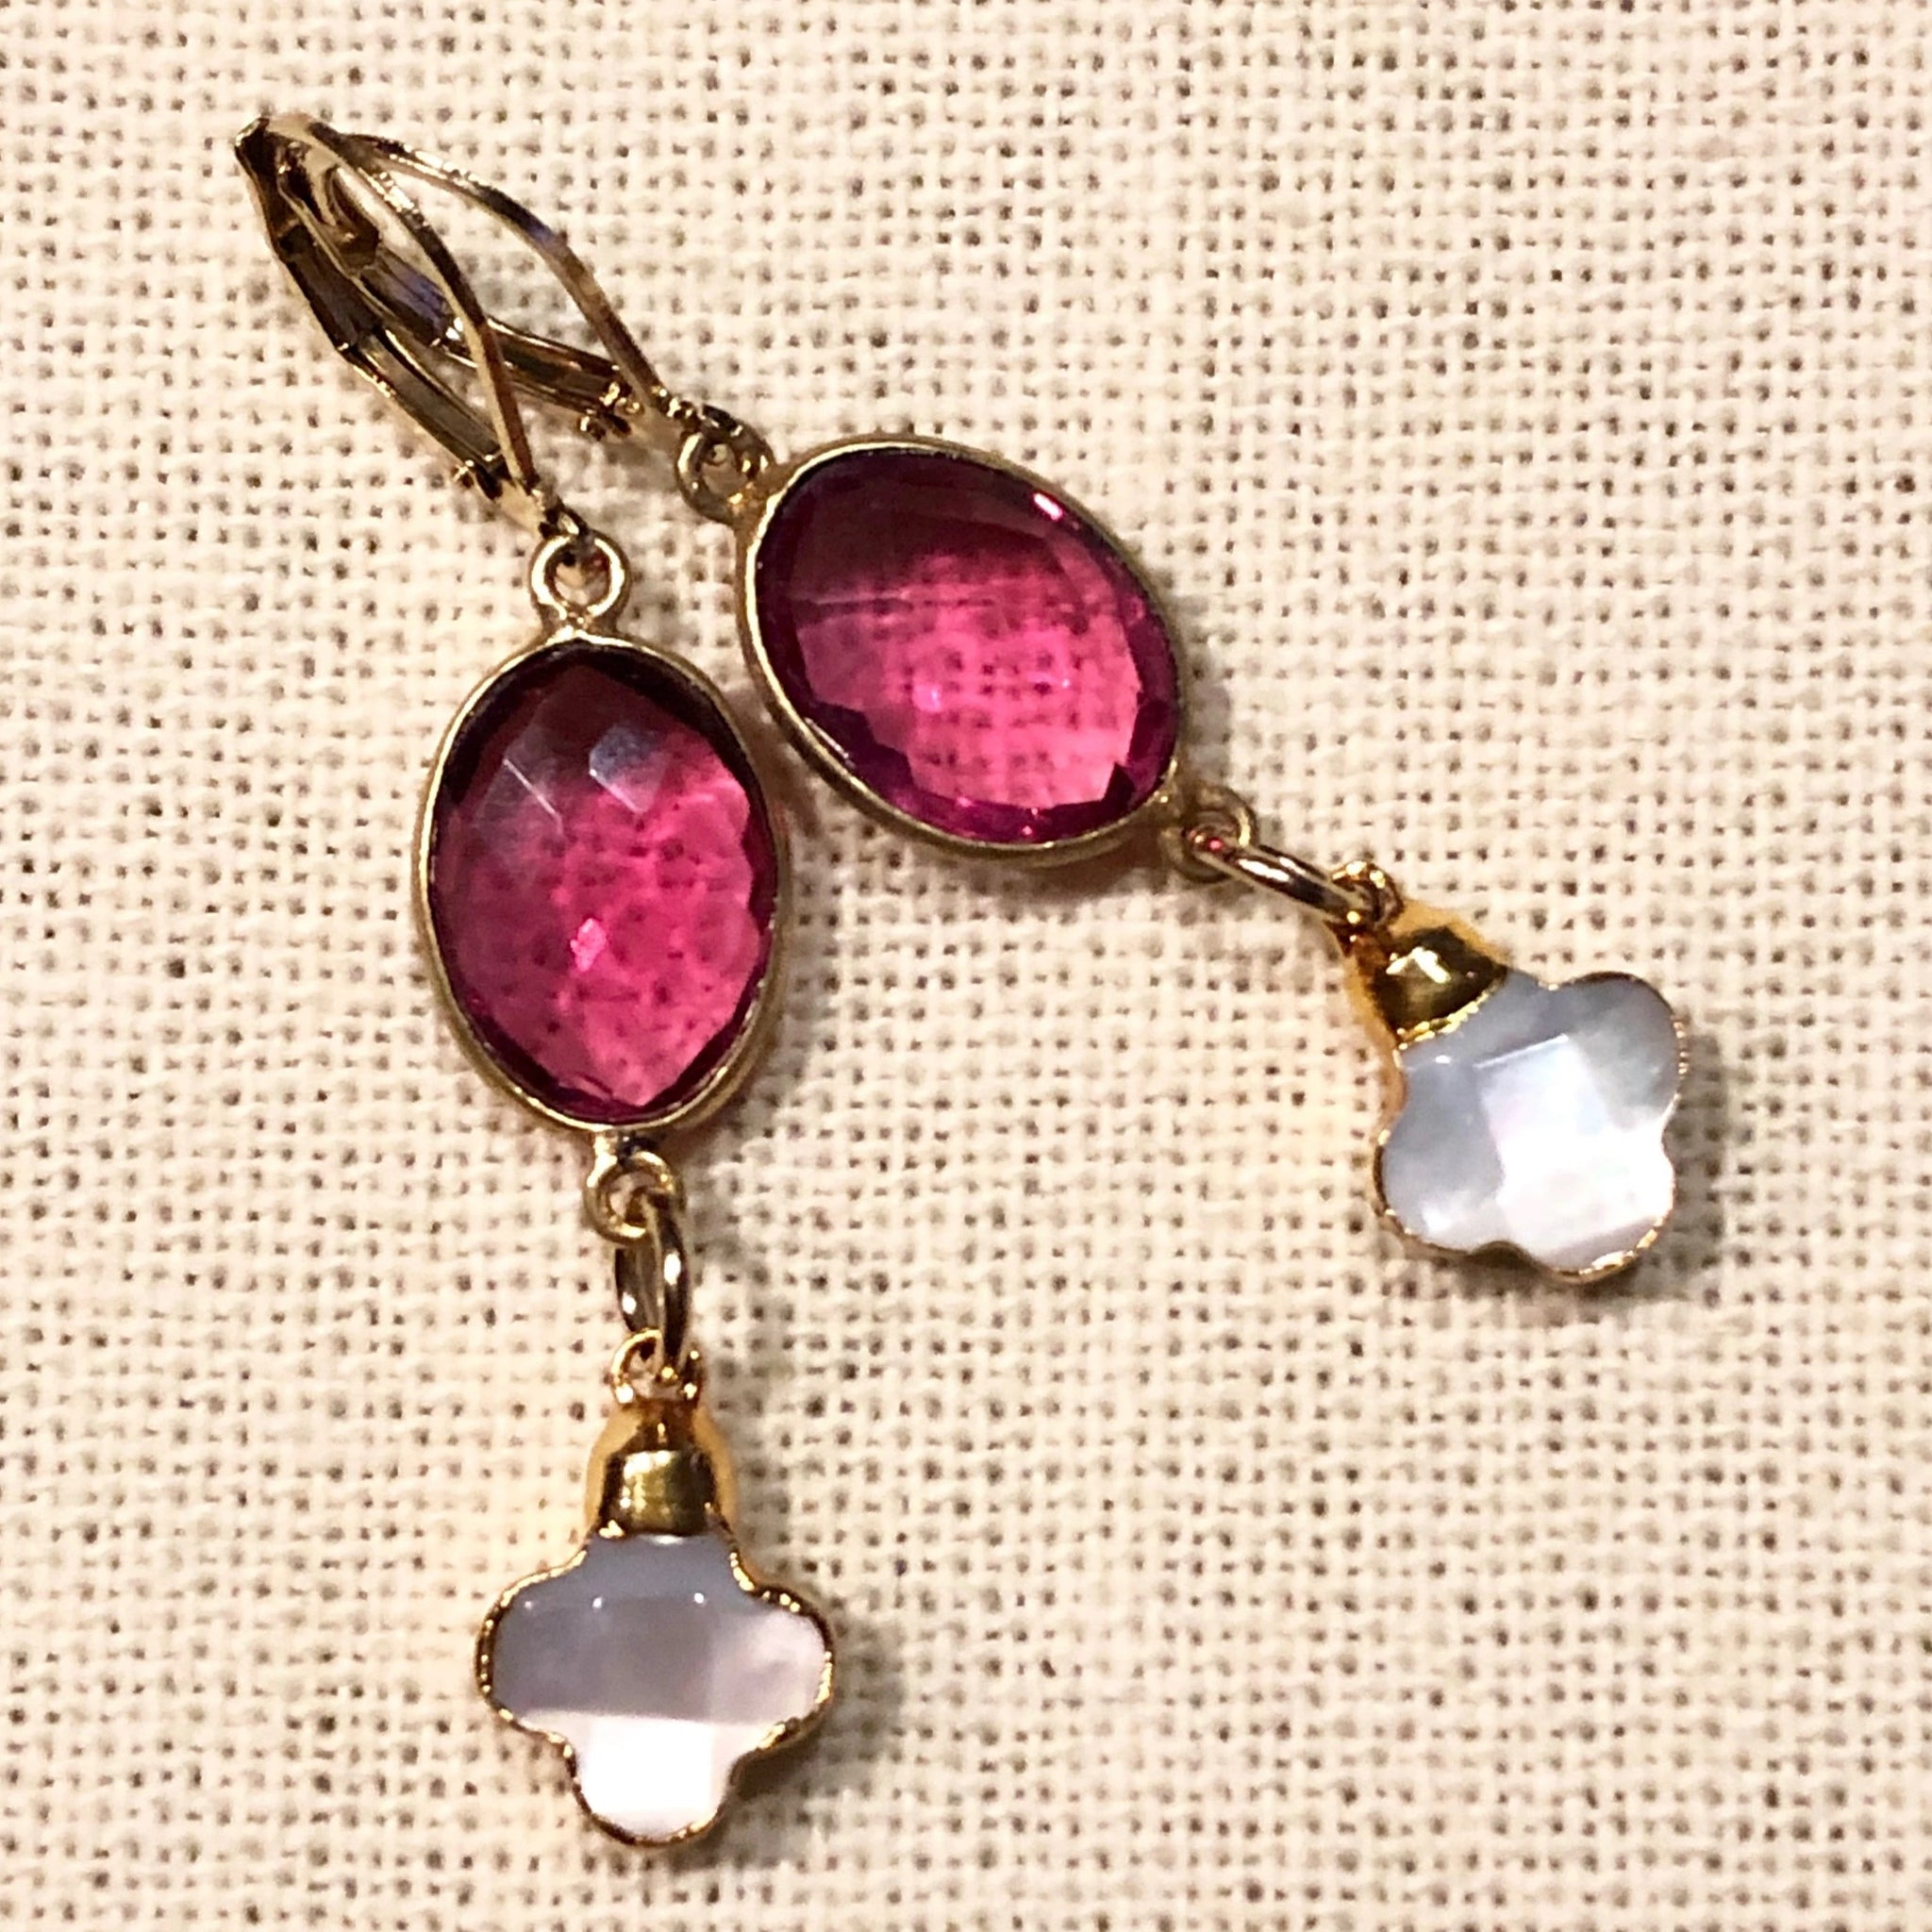 Fuchsia Hydro Quartz and Mother of Pearl Clover Gold Earrings by Sage Machado